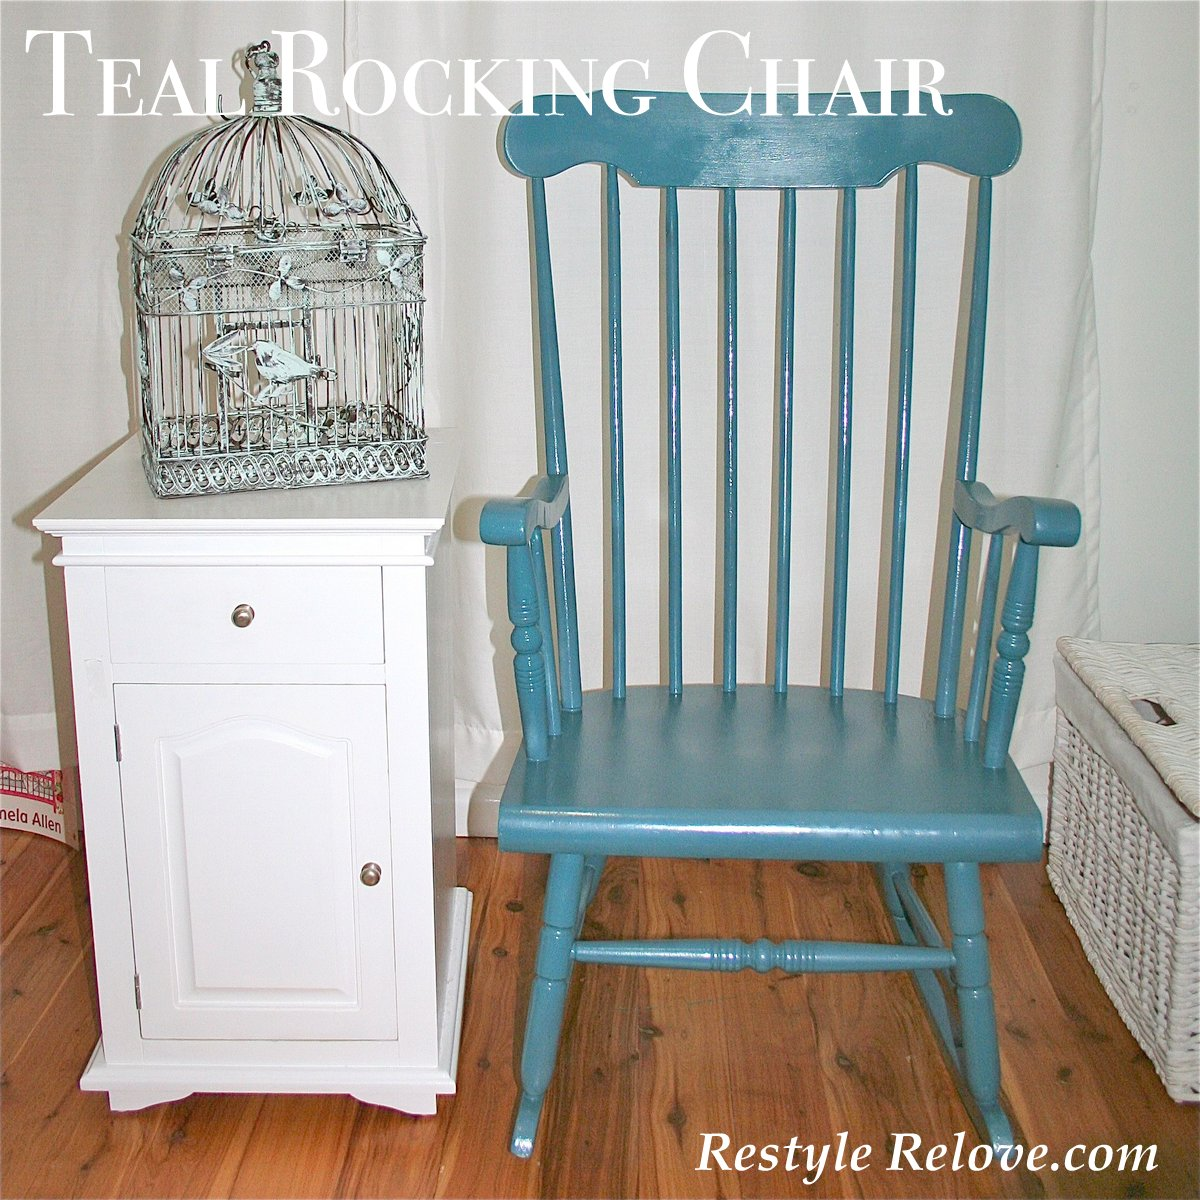 Teal Rocking Chair Teal Rocking Chair